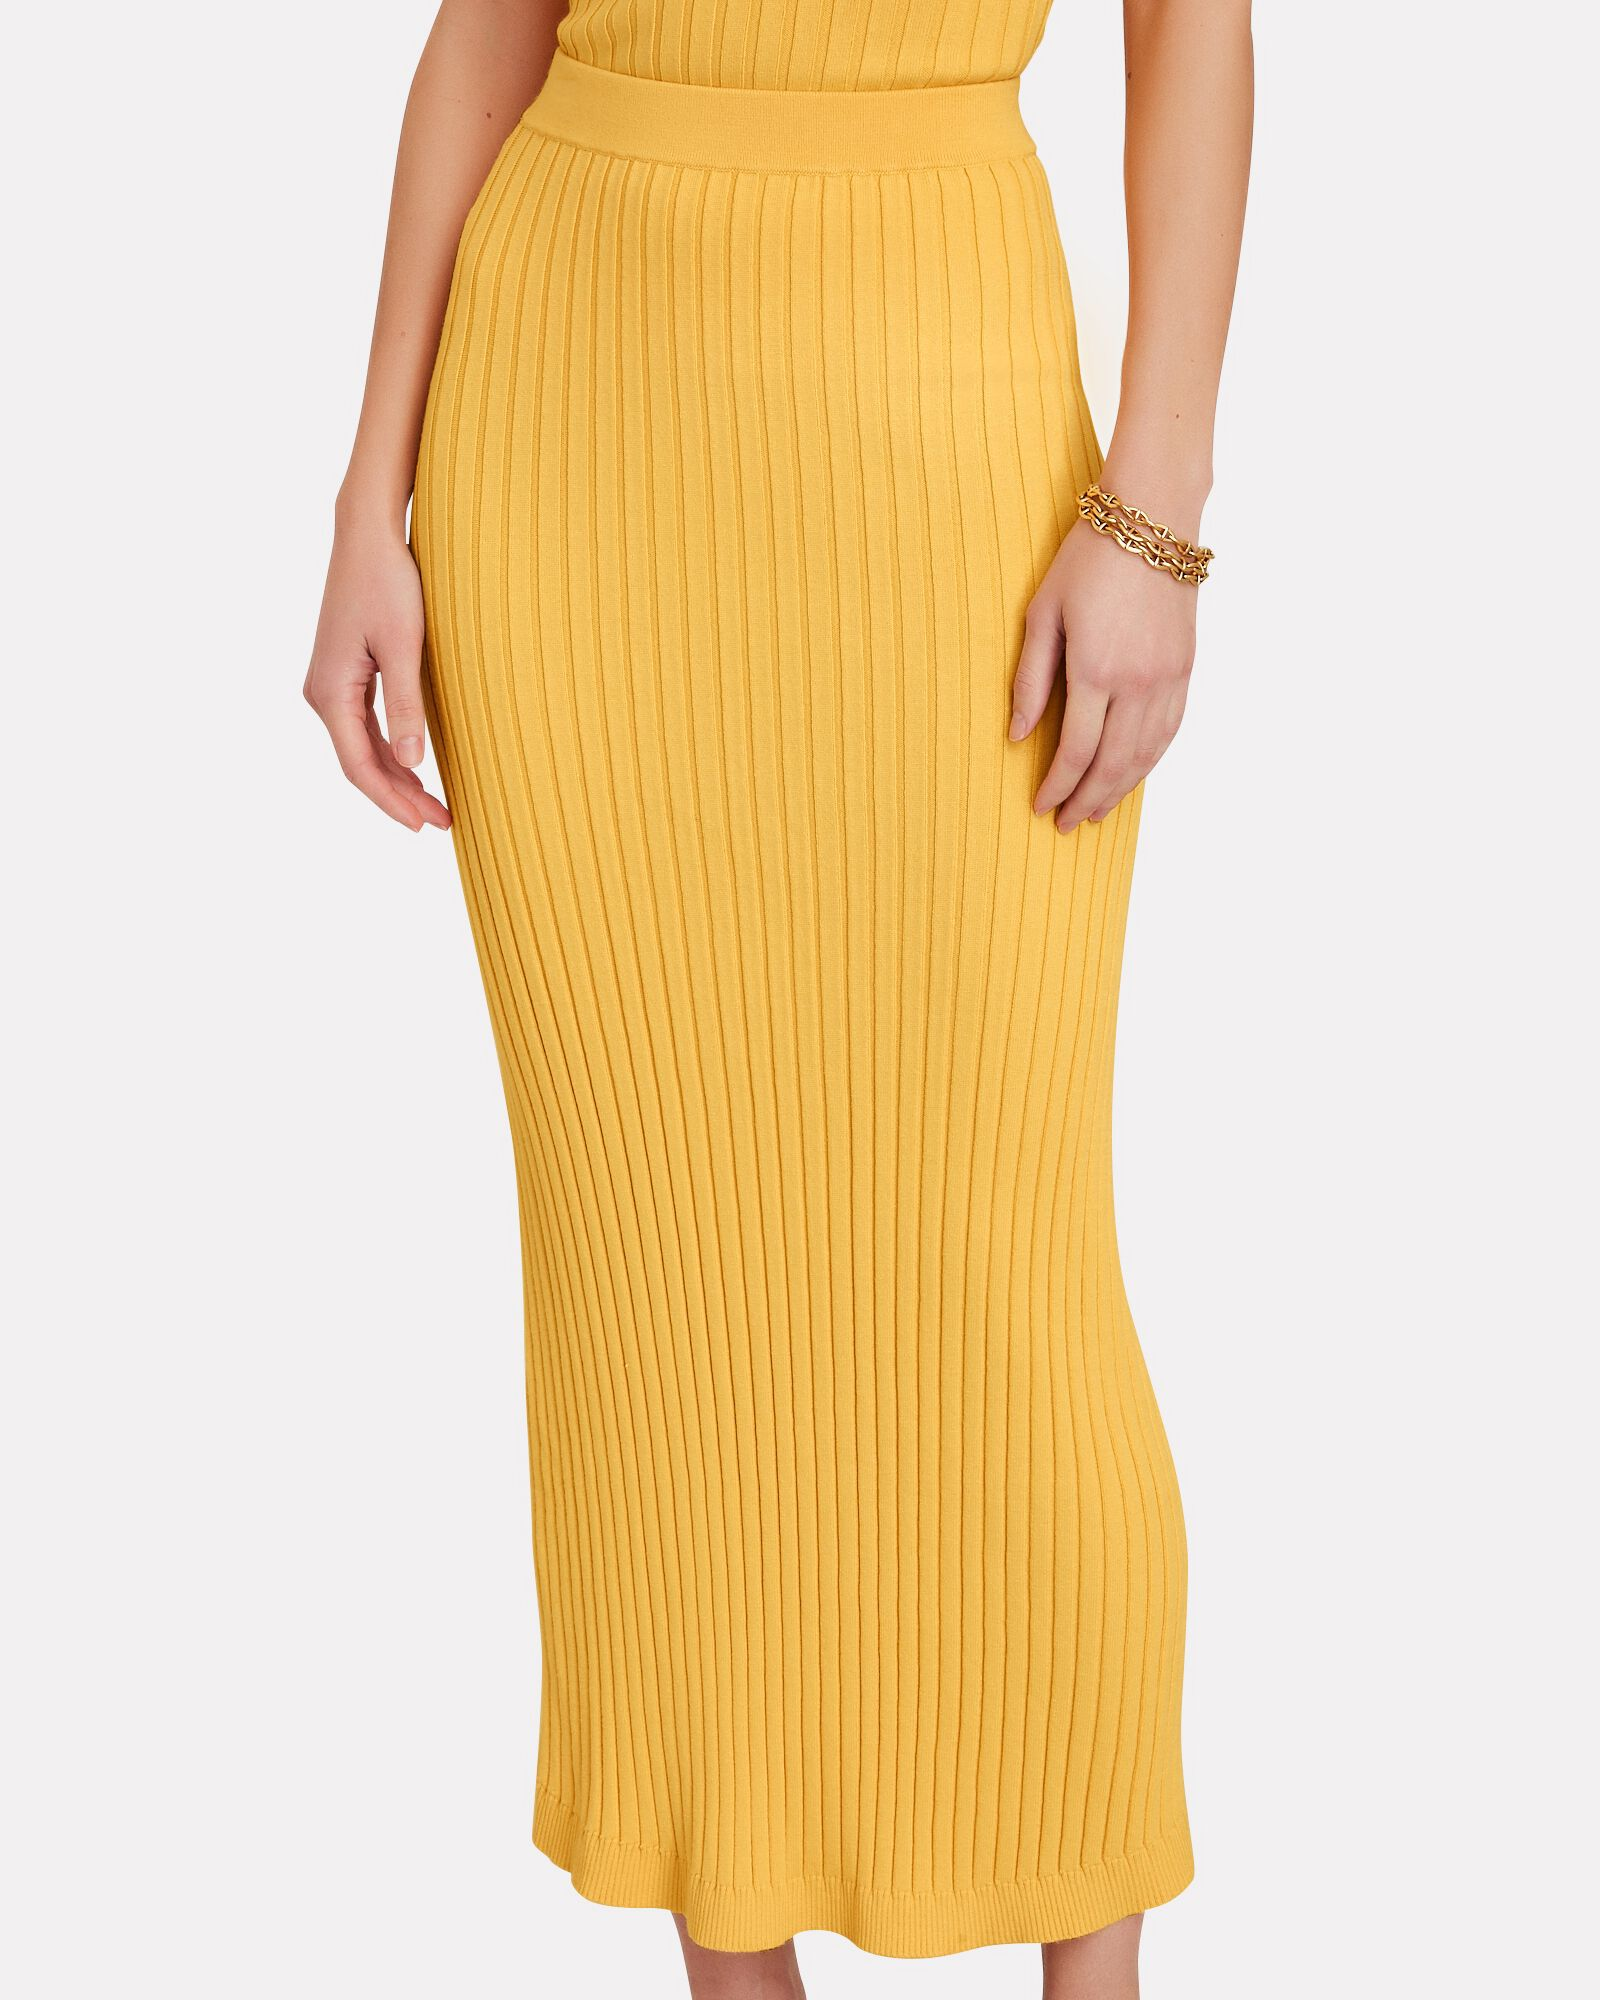 Ariana Rib Knit Midi Skirt, YELLOW, hi-res